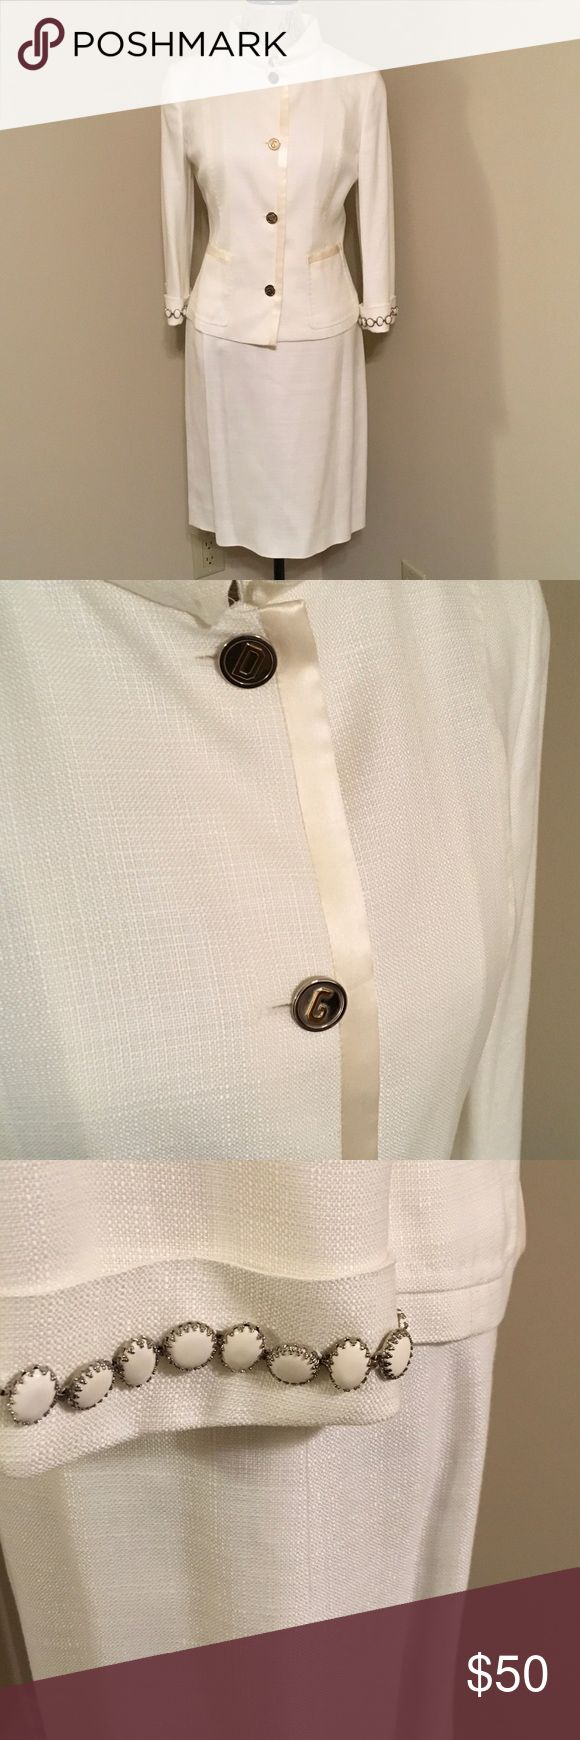 Dolce and Gabana white suit Dolce and Gabana white rayon suit with white silk accents. The buttons are silver with a gold D on some and gold G on others. The fabric resembles linen but does not wrinkle dolce snd Gabana Skirts Skirt Sets